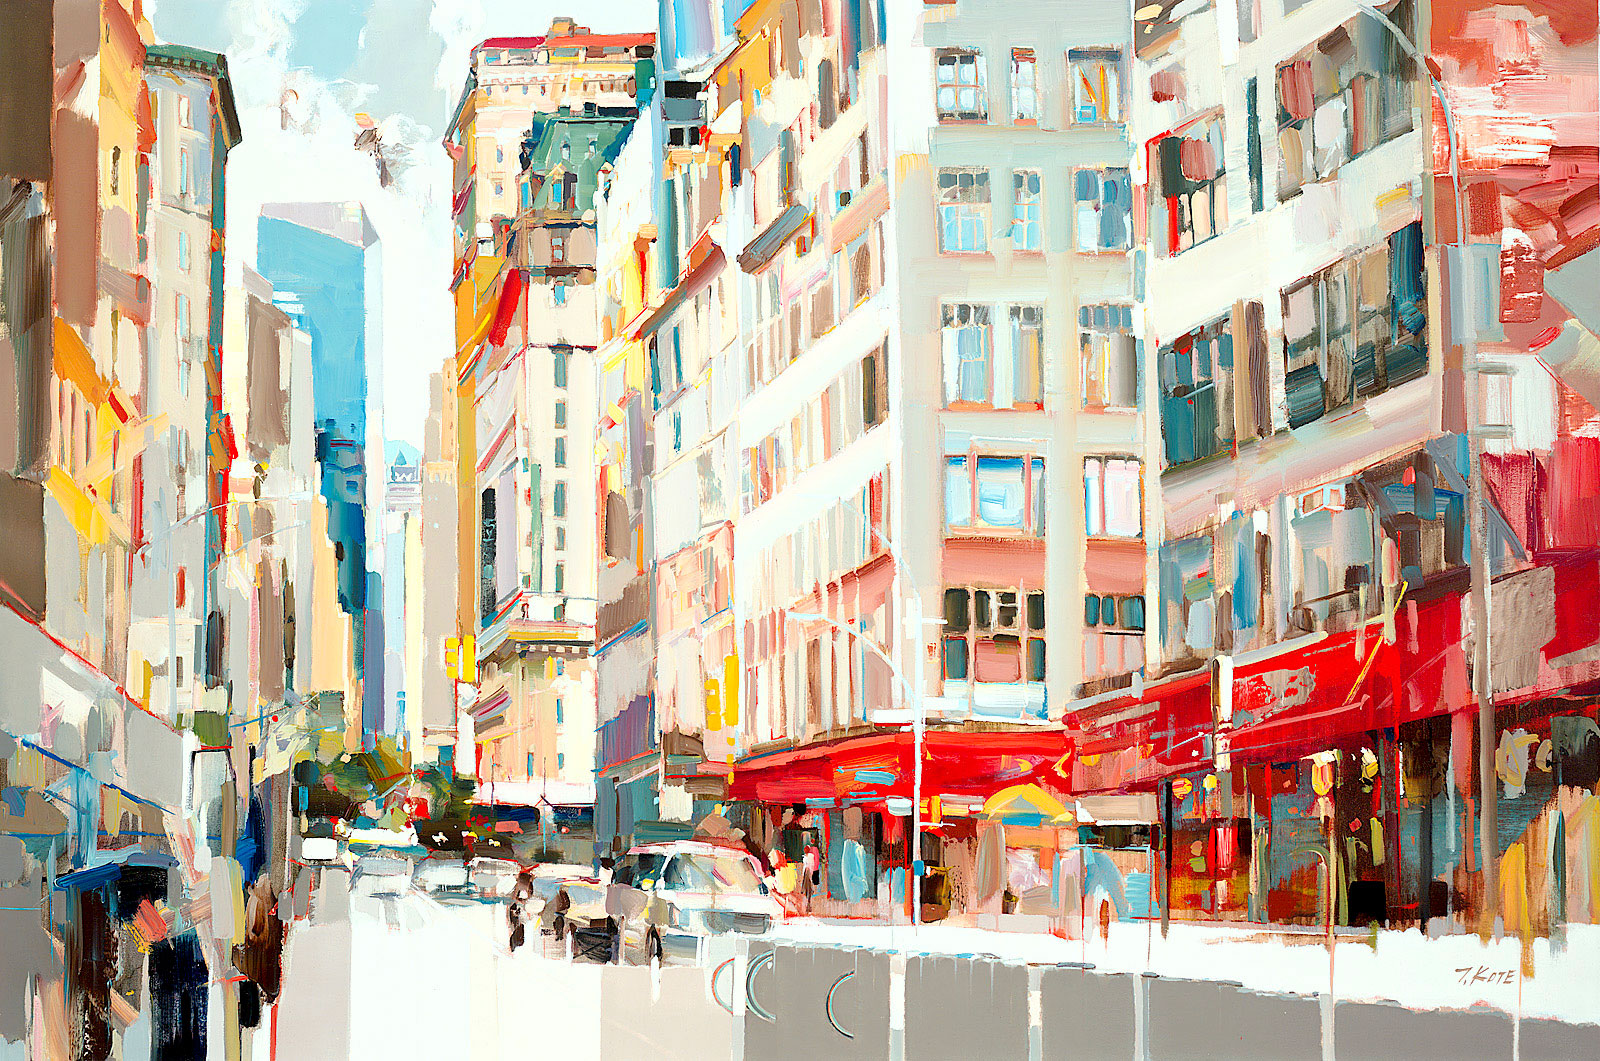 Josef Kote - There Is Light, I Can See It